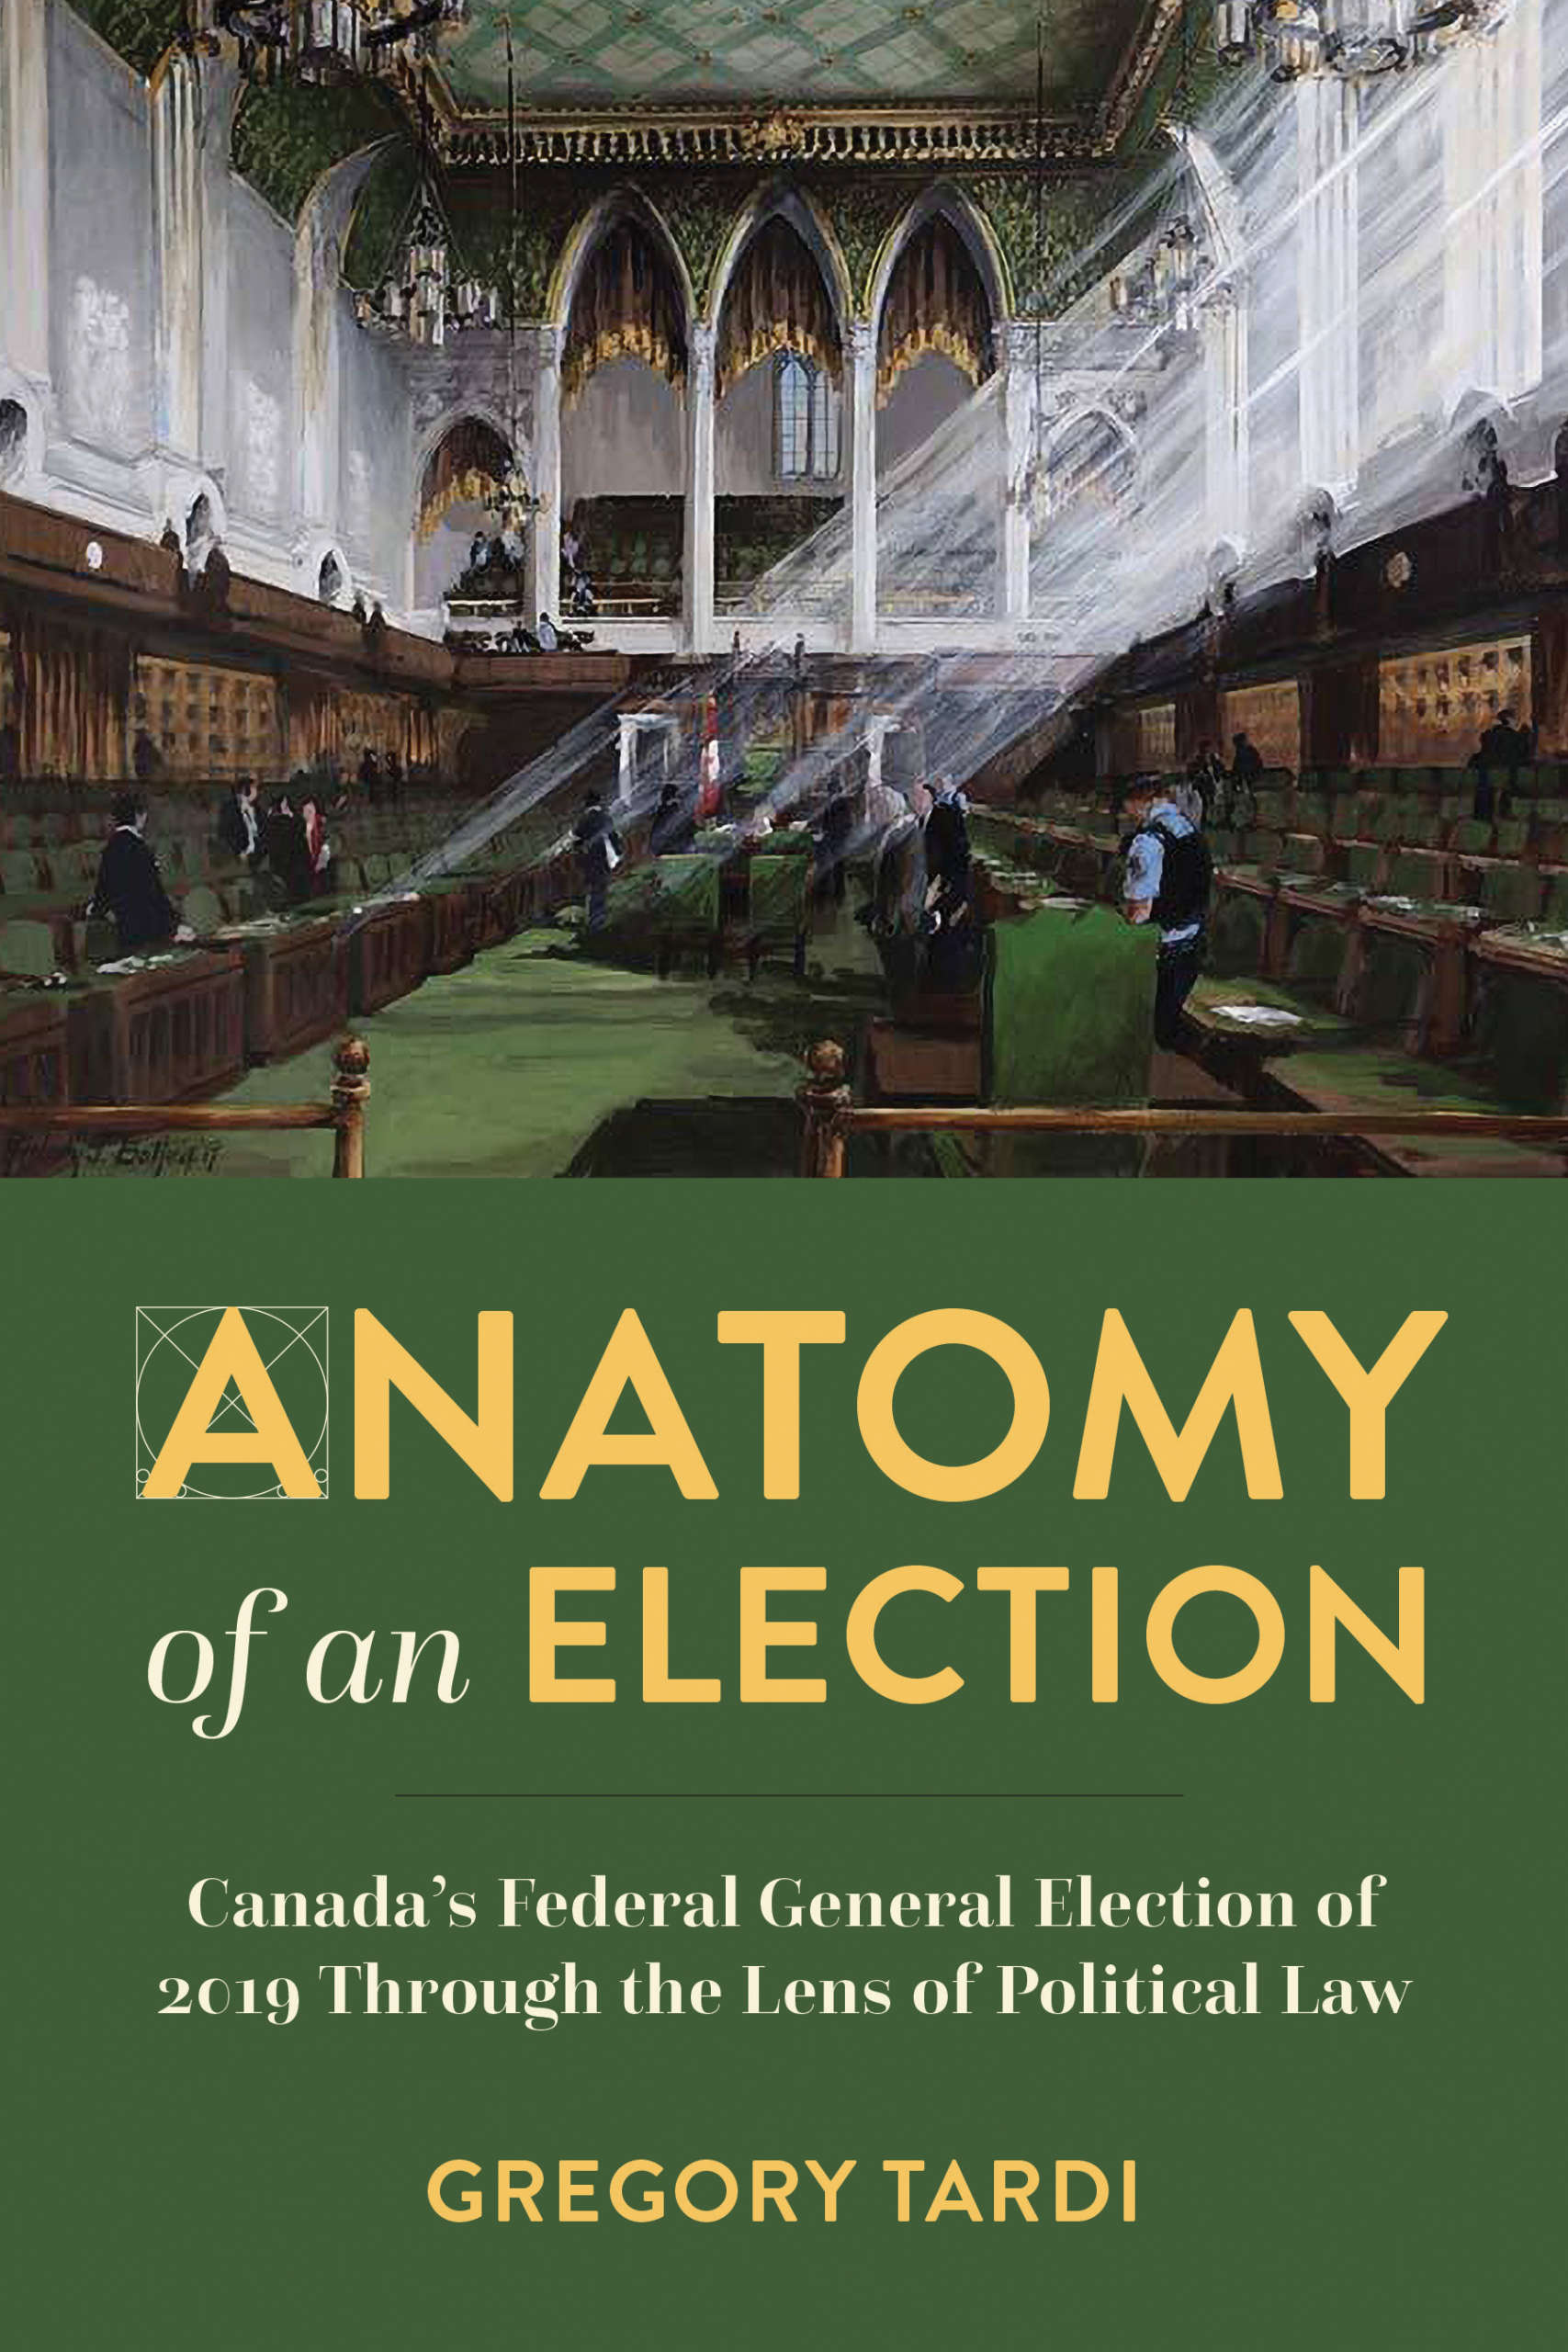 Book cover for Anatomy of an Election by Gregory Tardi. The cover features a painting of the inside of Ottawa's Parliament building, with light streaming inside.